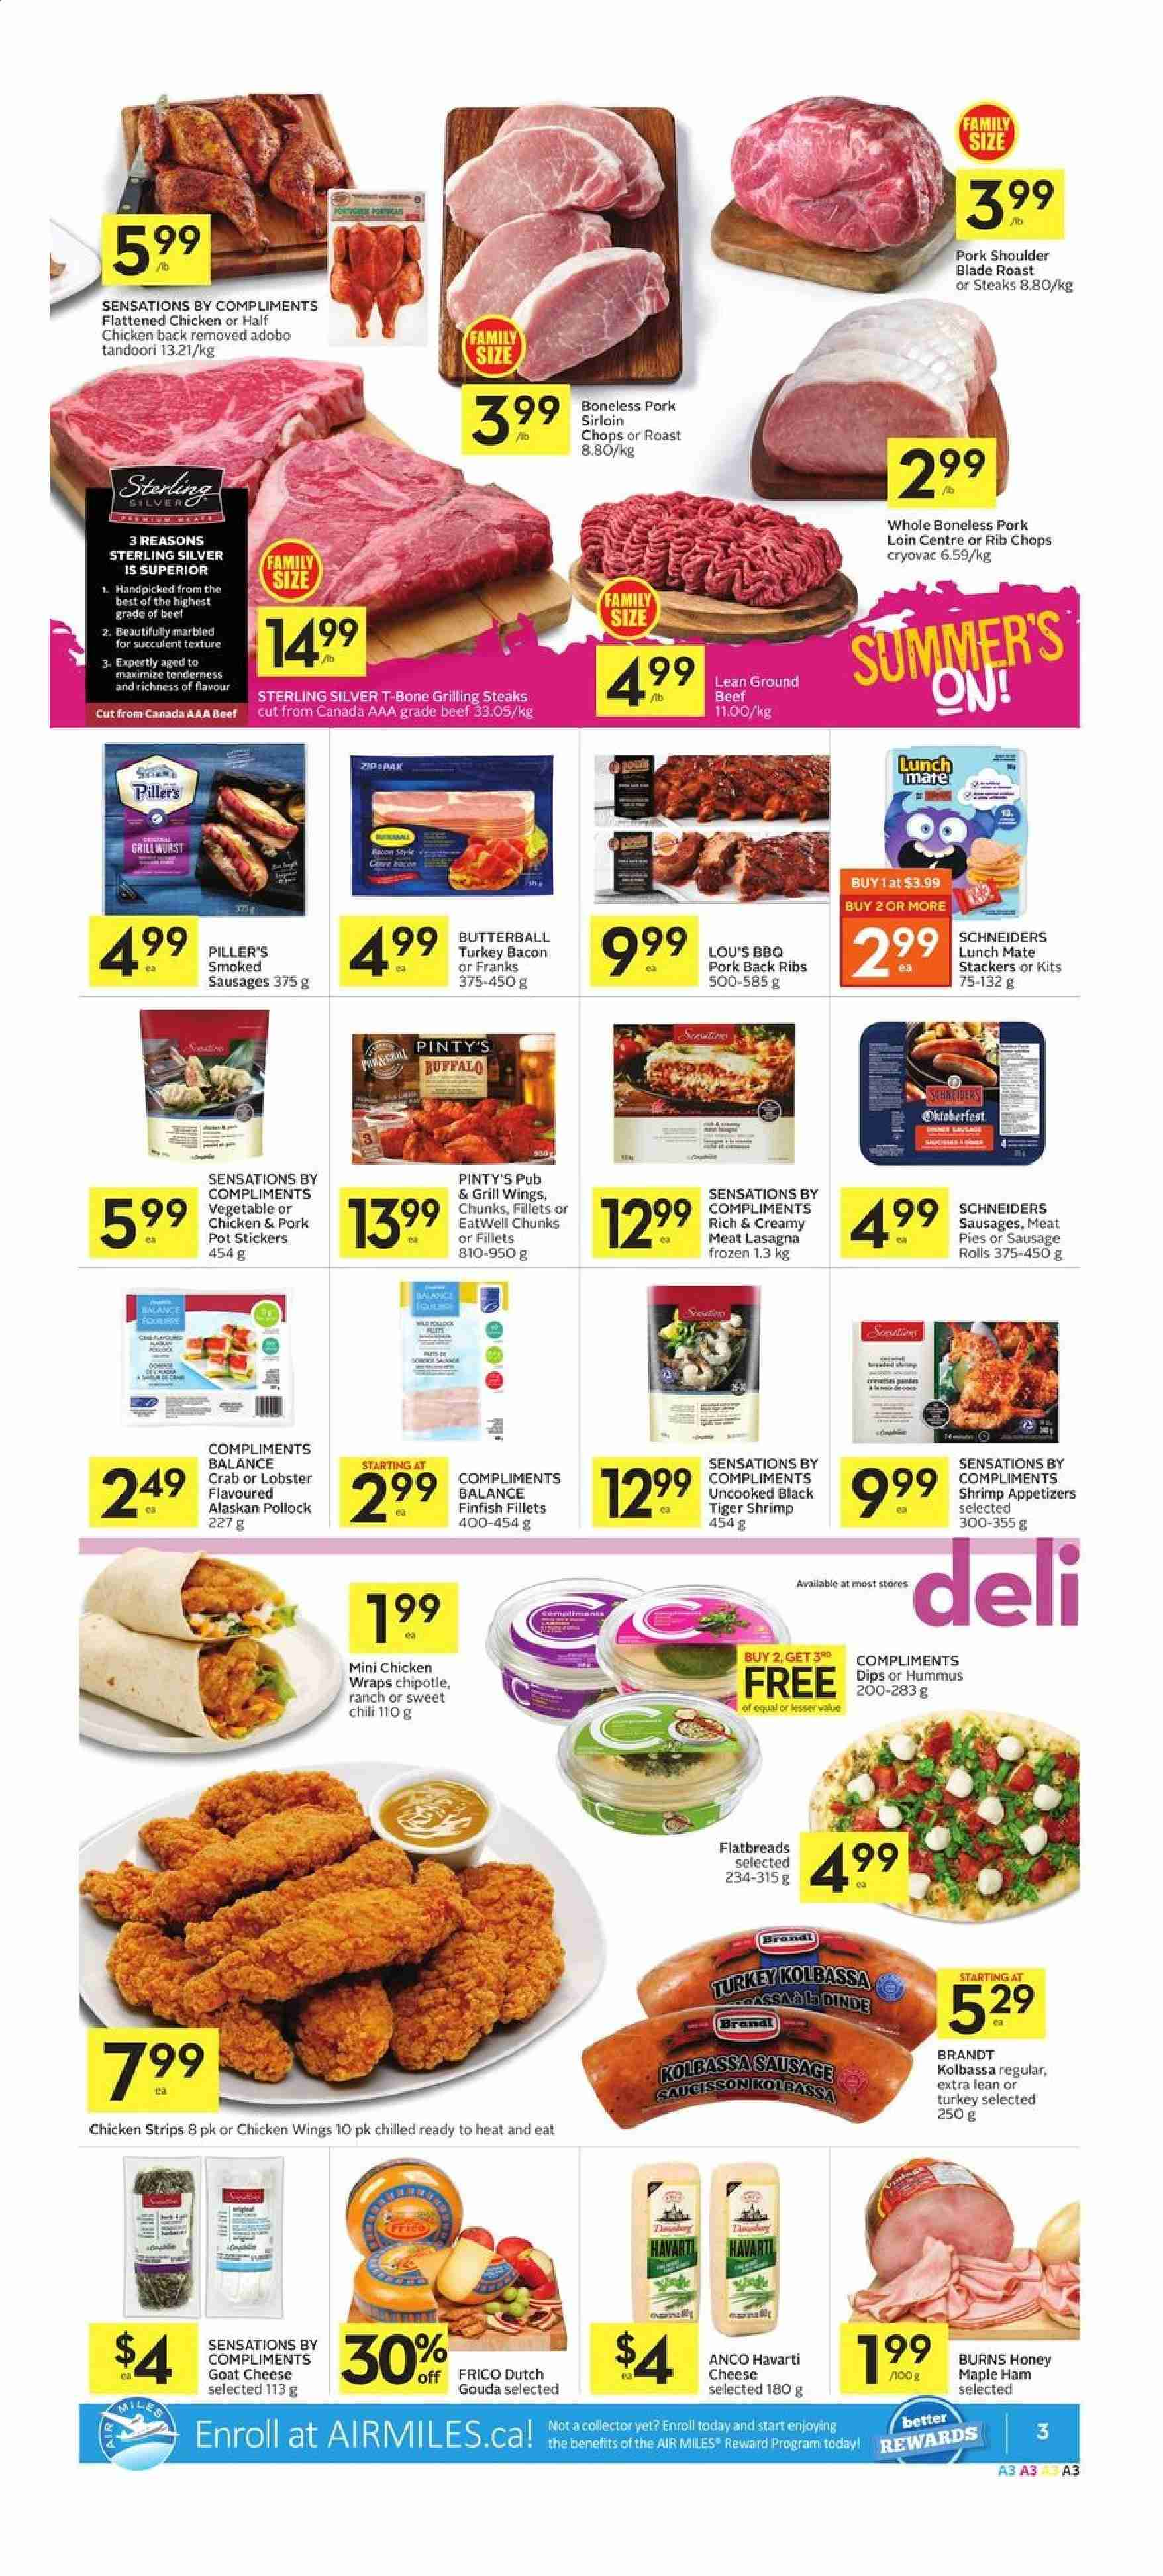 Foodland Flyer  - June 06, 2019 - June 12, 2019. Page 3.